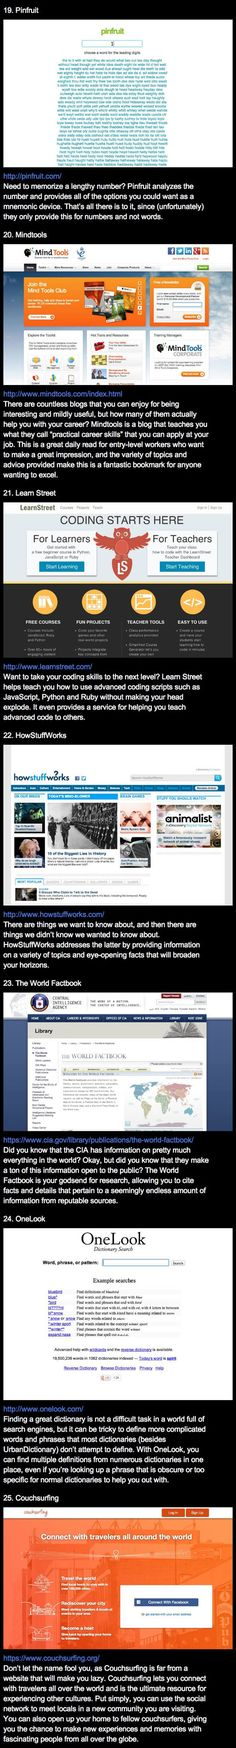 25 websites that make you cleverer... - The Meta Picture